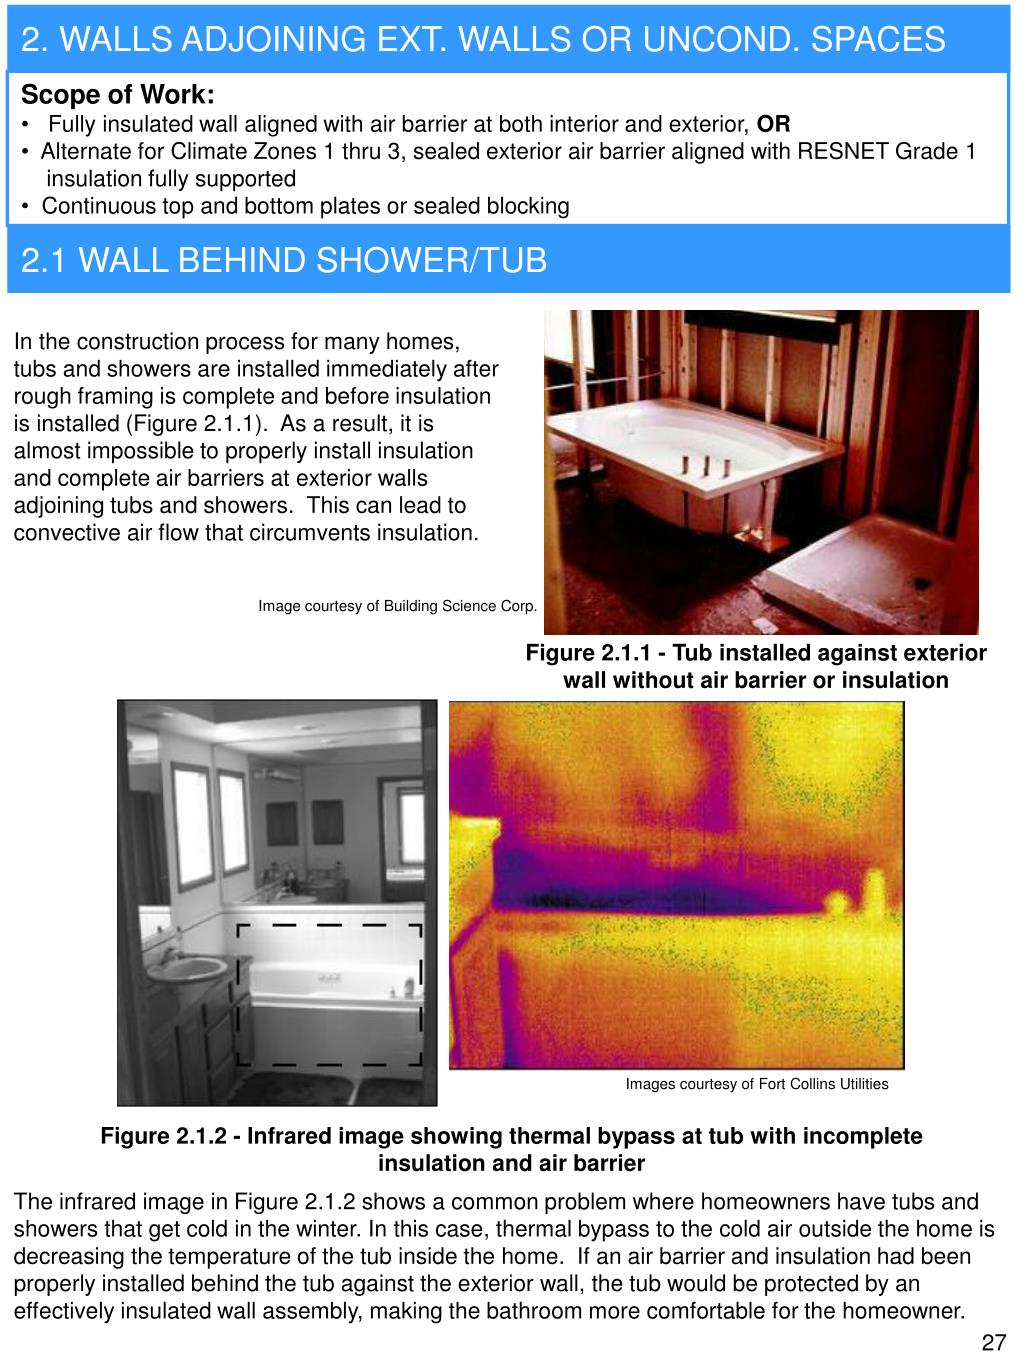 2. WALLS ADJOINING EXT. WALLS OR UNCOND. SPACES